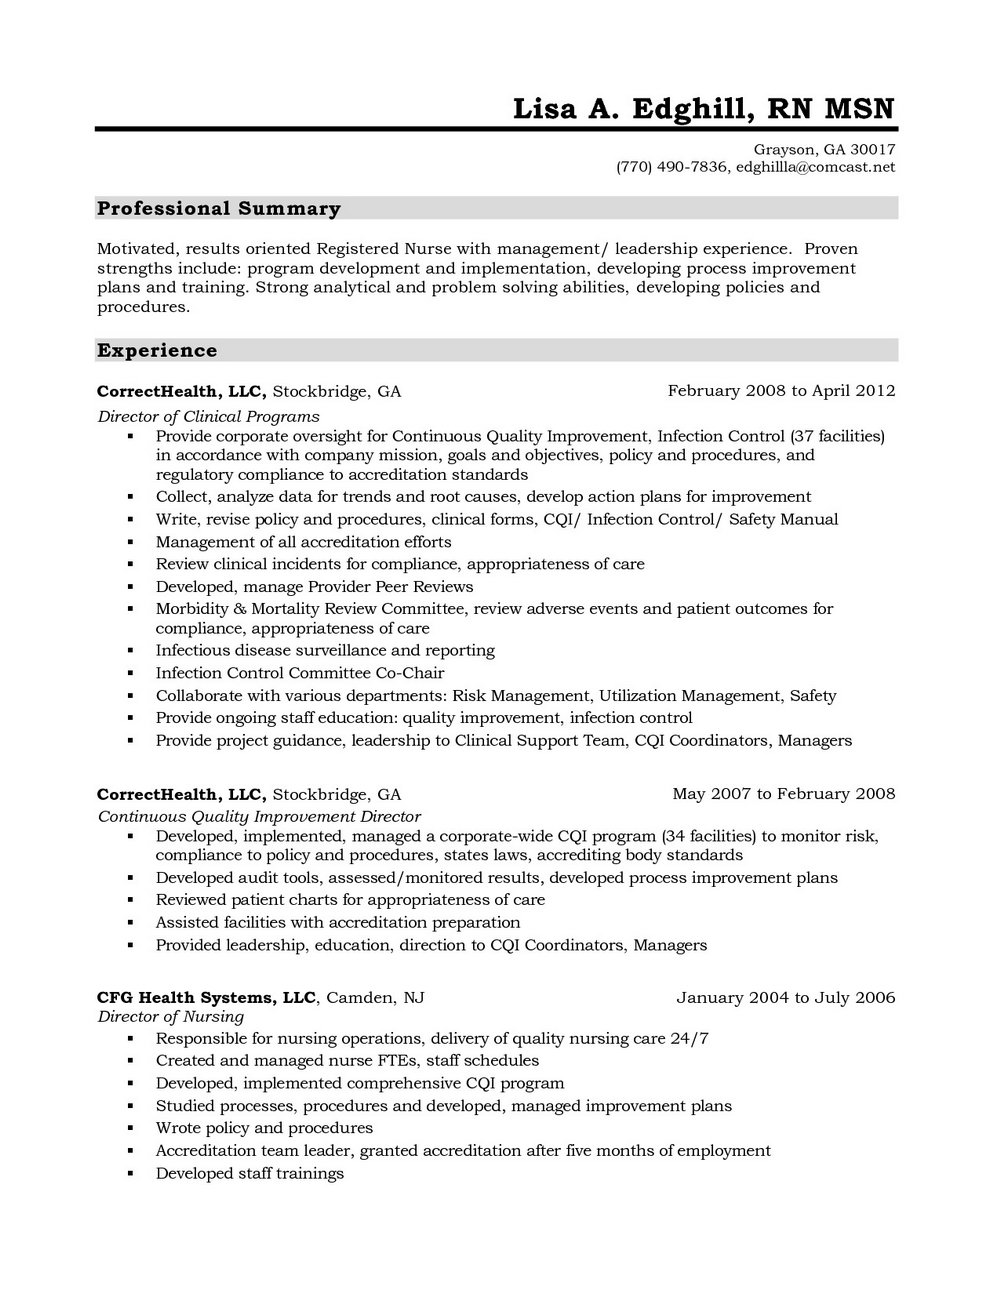 Resume Objective For Registered Nurse